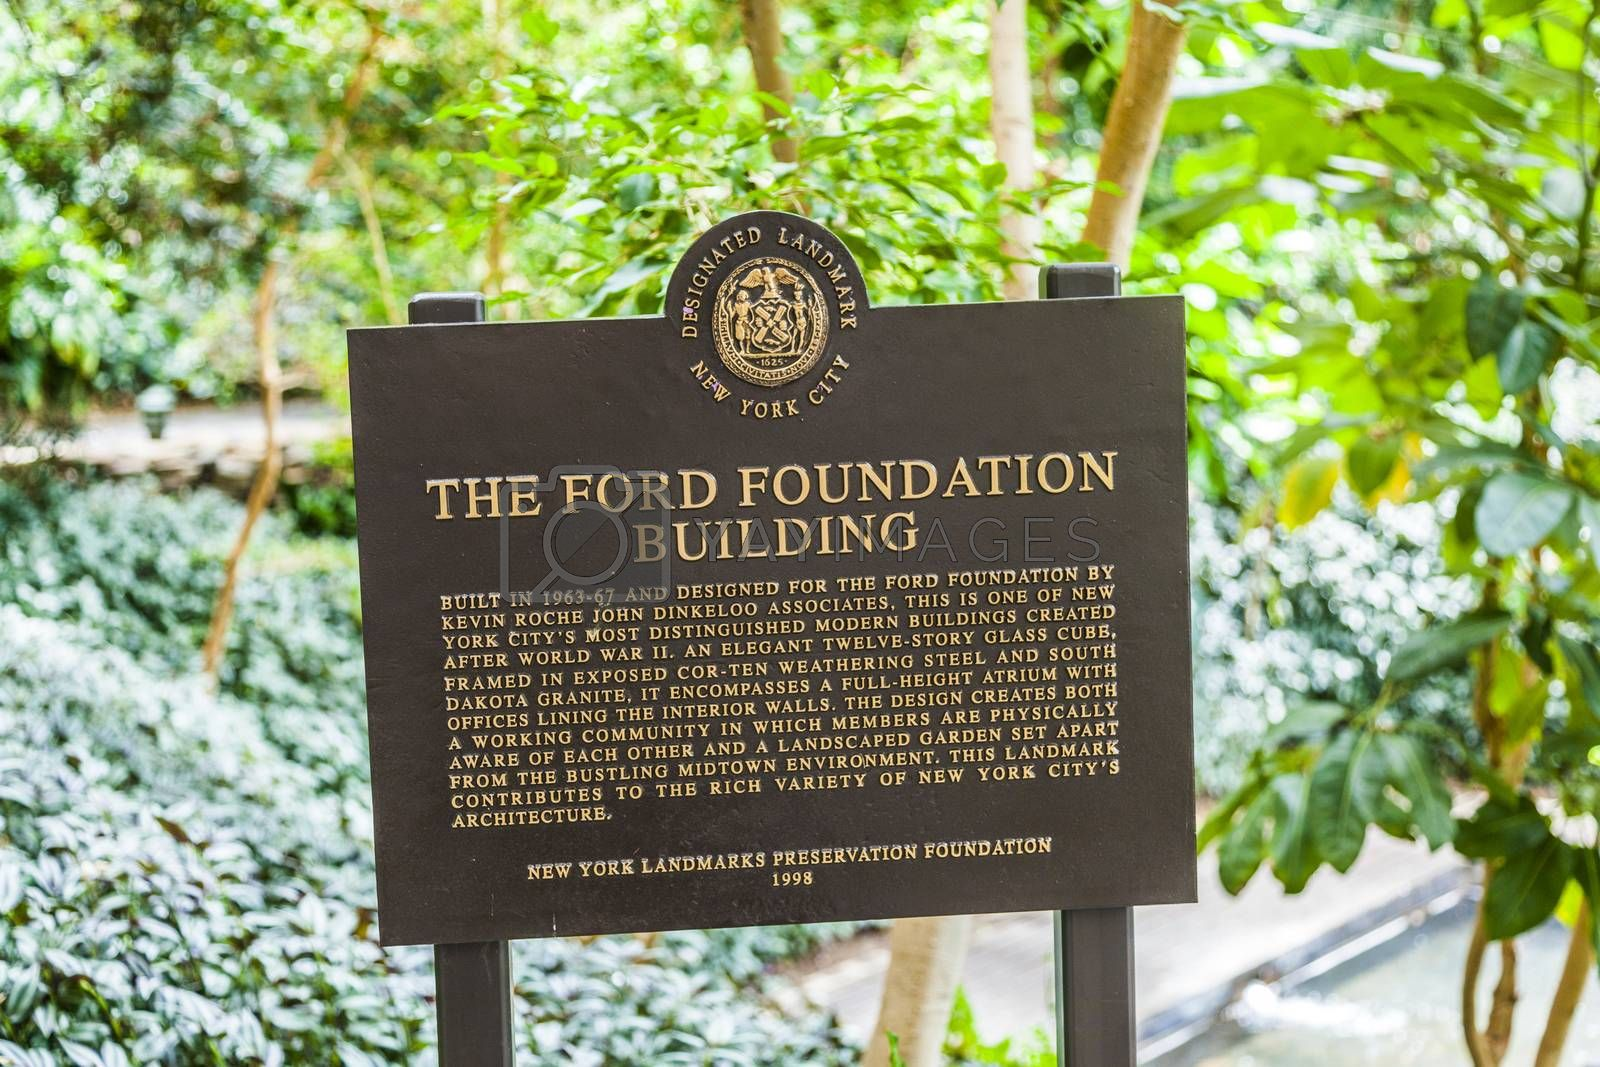 NEW YORK CITY - JUL 13: Building of the Ford Foundation, glass and brick combination with working community and garden on  July 13, 2010 in Manhattan, New York City. The compley was build in 1967 by Kevin Roche.